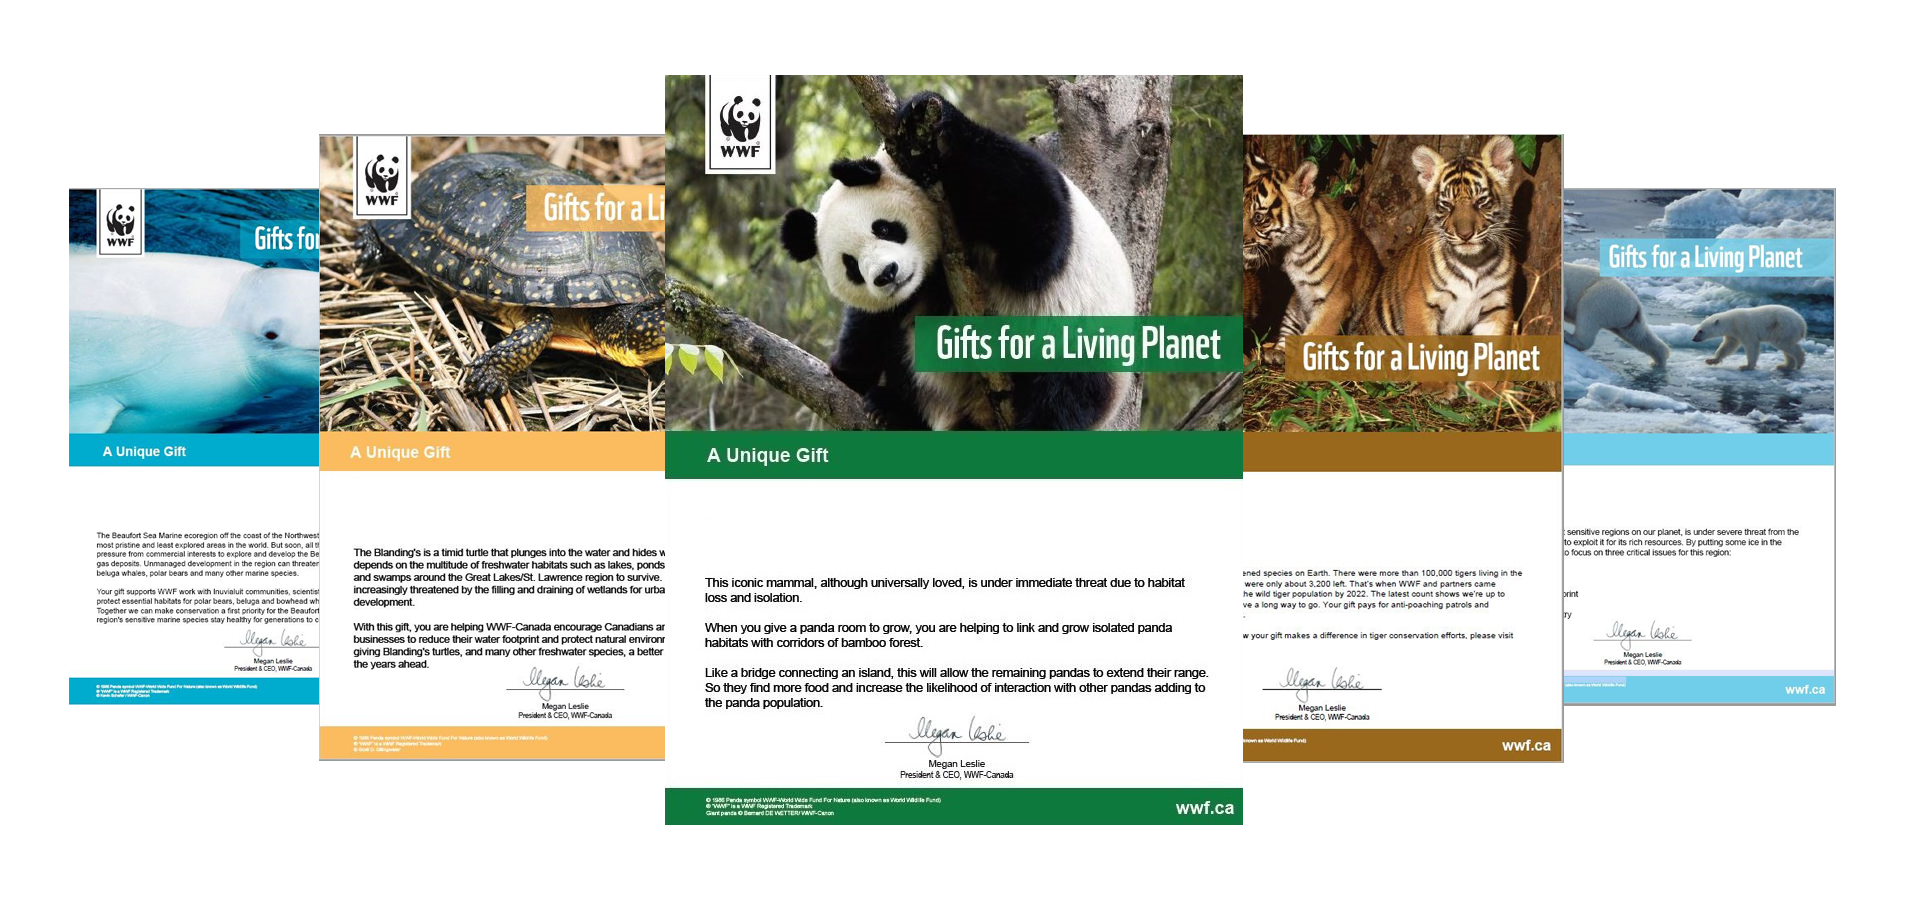 Virtual Gifts | WWF-Canada